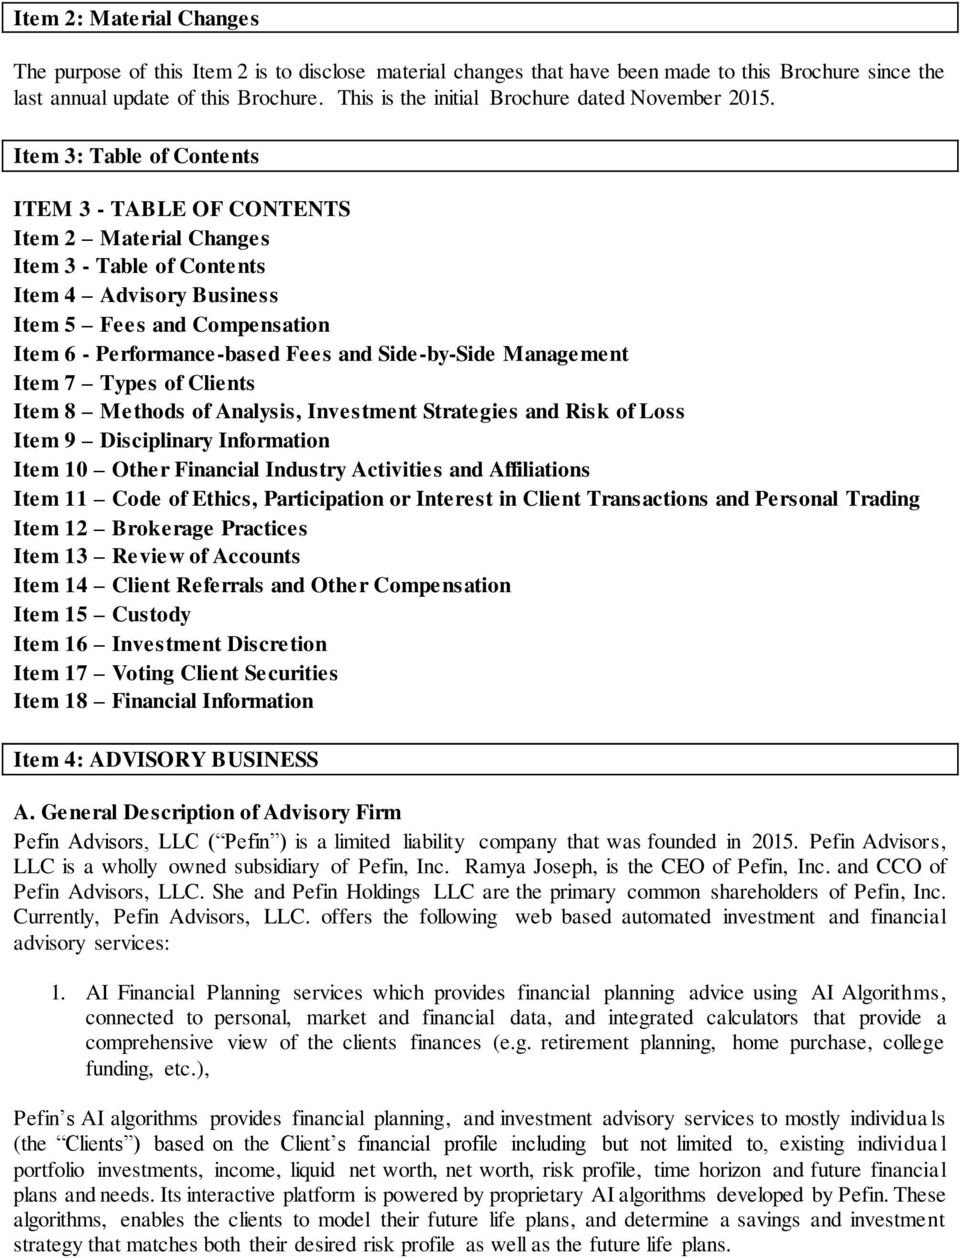 Item 3: Table of Contents ITEM 3 - TABLE OF CONTENTS Item 2 Material Changes Item 3 - Table of Contents Item 4 Advisory Business Item 5 Fees and Compensation Item 6 - Performance-based Fees and